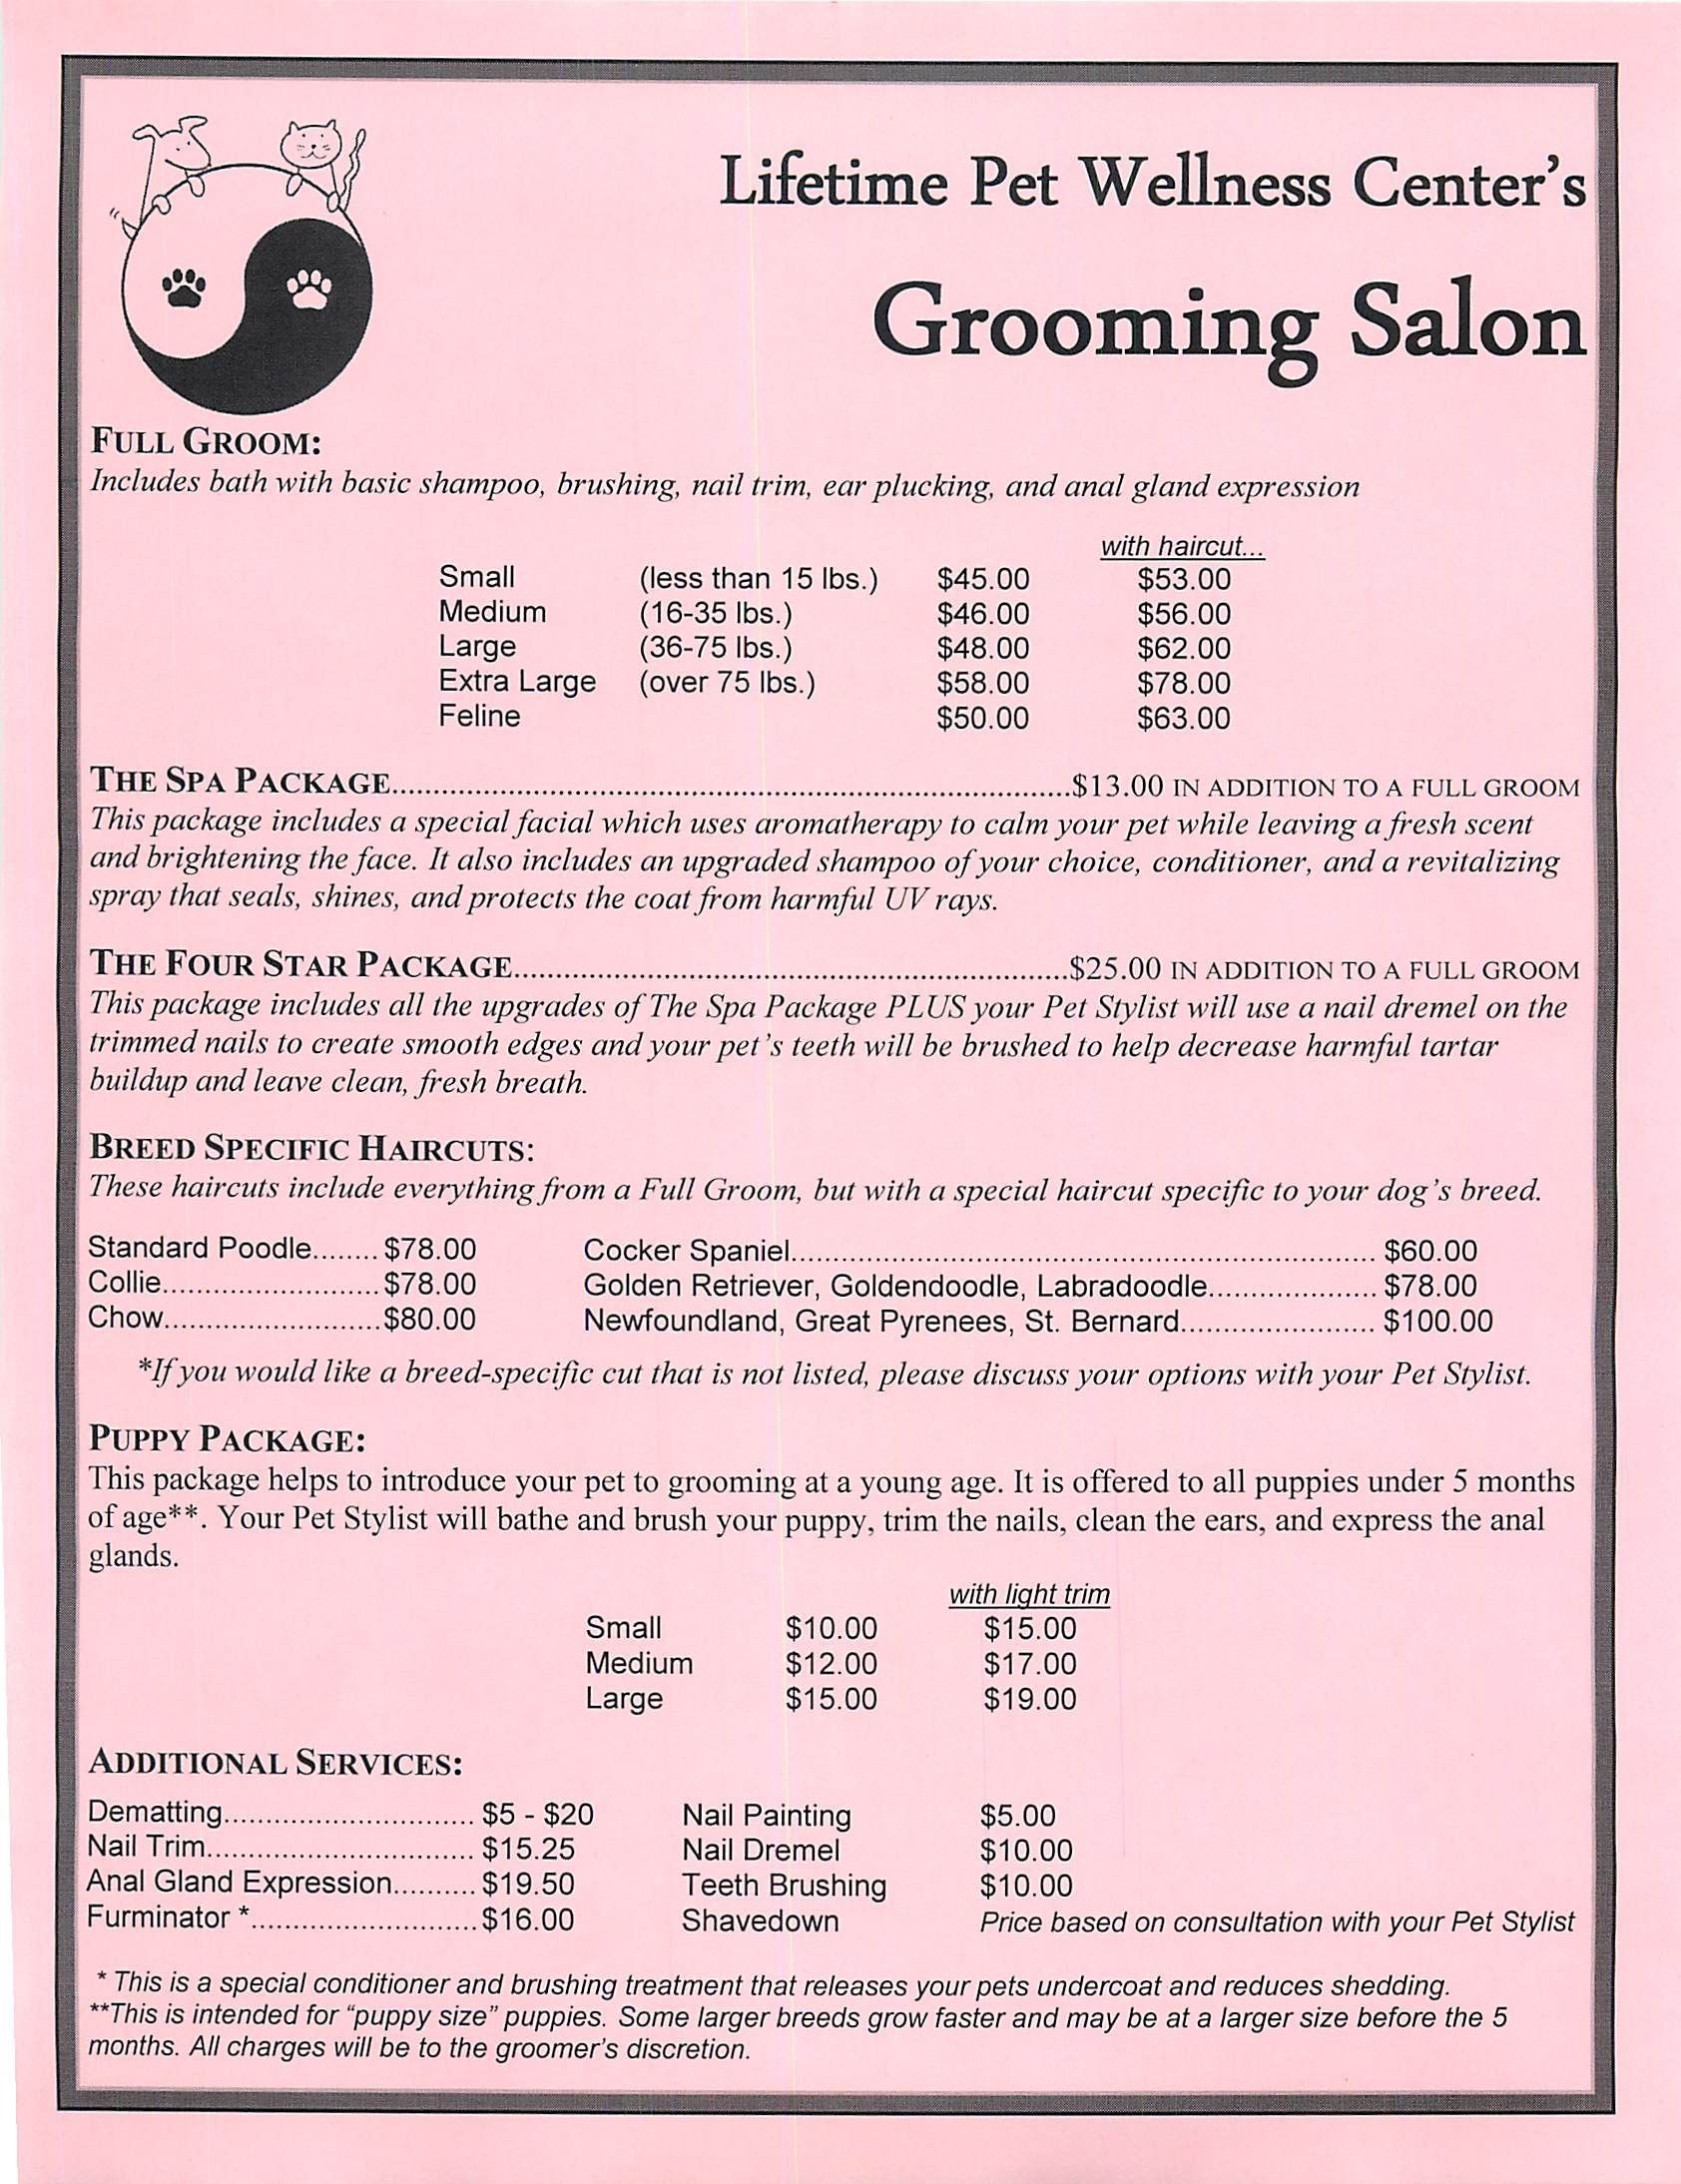 Grooming Services Price Sheet Dog Grooming Salons Dog Grooming Shop Dog Grooming